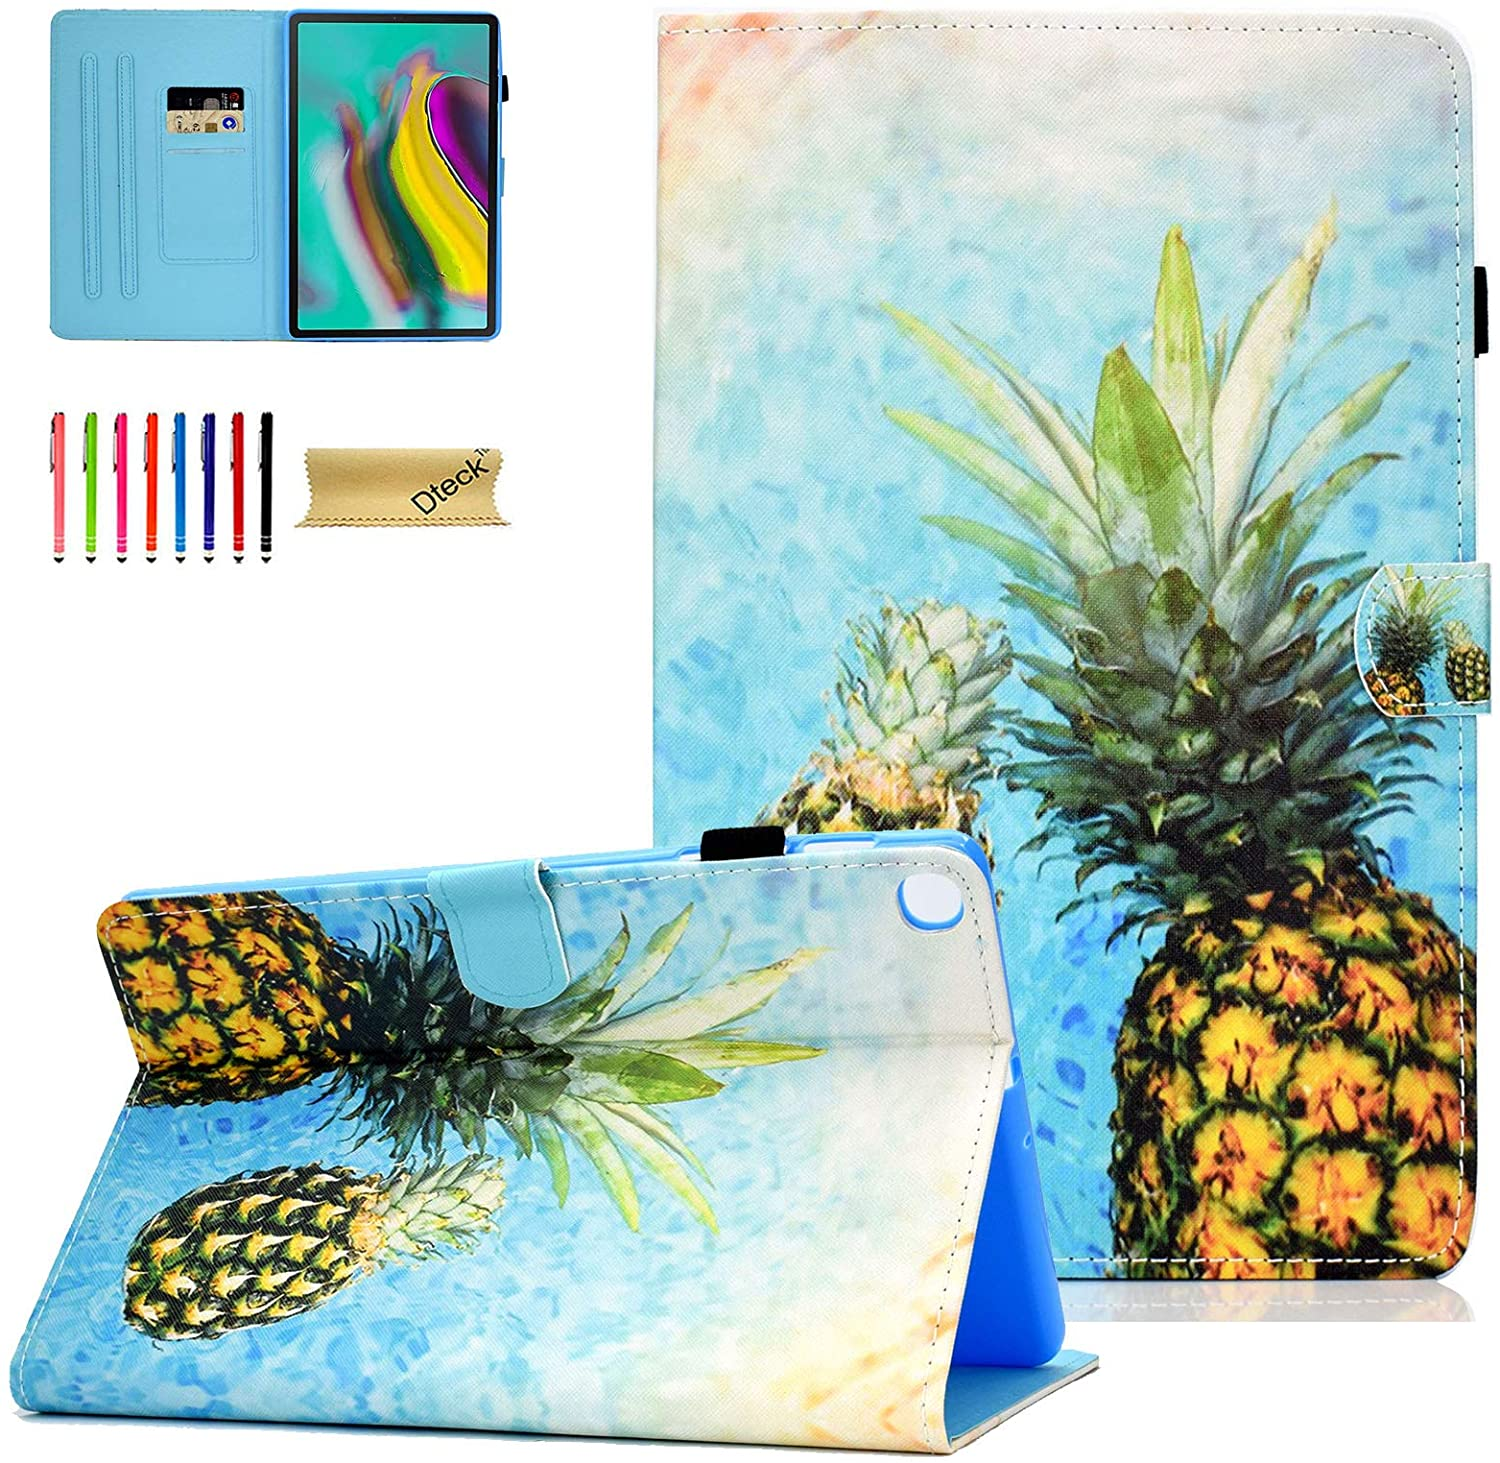 Galaxy Tab S5e 10.5 Case, SM-T720 Case, Dteck Slim PU Leather Folio Stand Protective Case with Auto Wake/Sleep Smart Cover for Samsung Galaxy Tab S5e 10.5 inch Tablet 2019 T720/T725, Pineapple